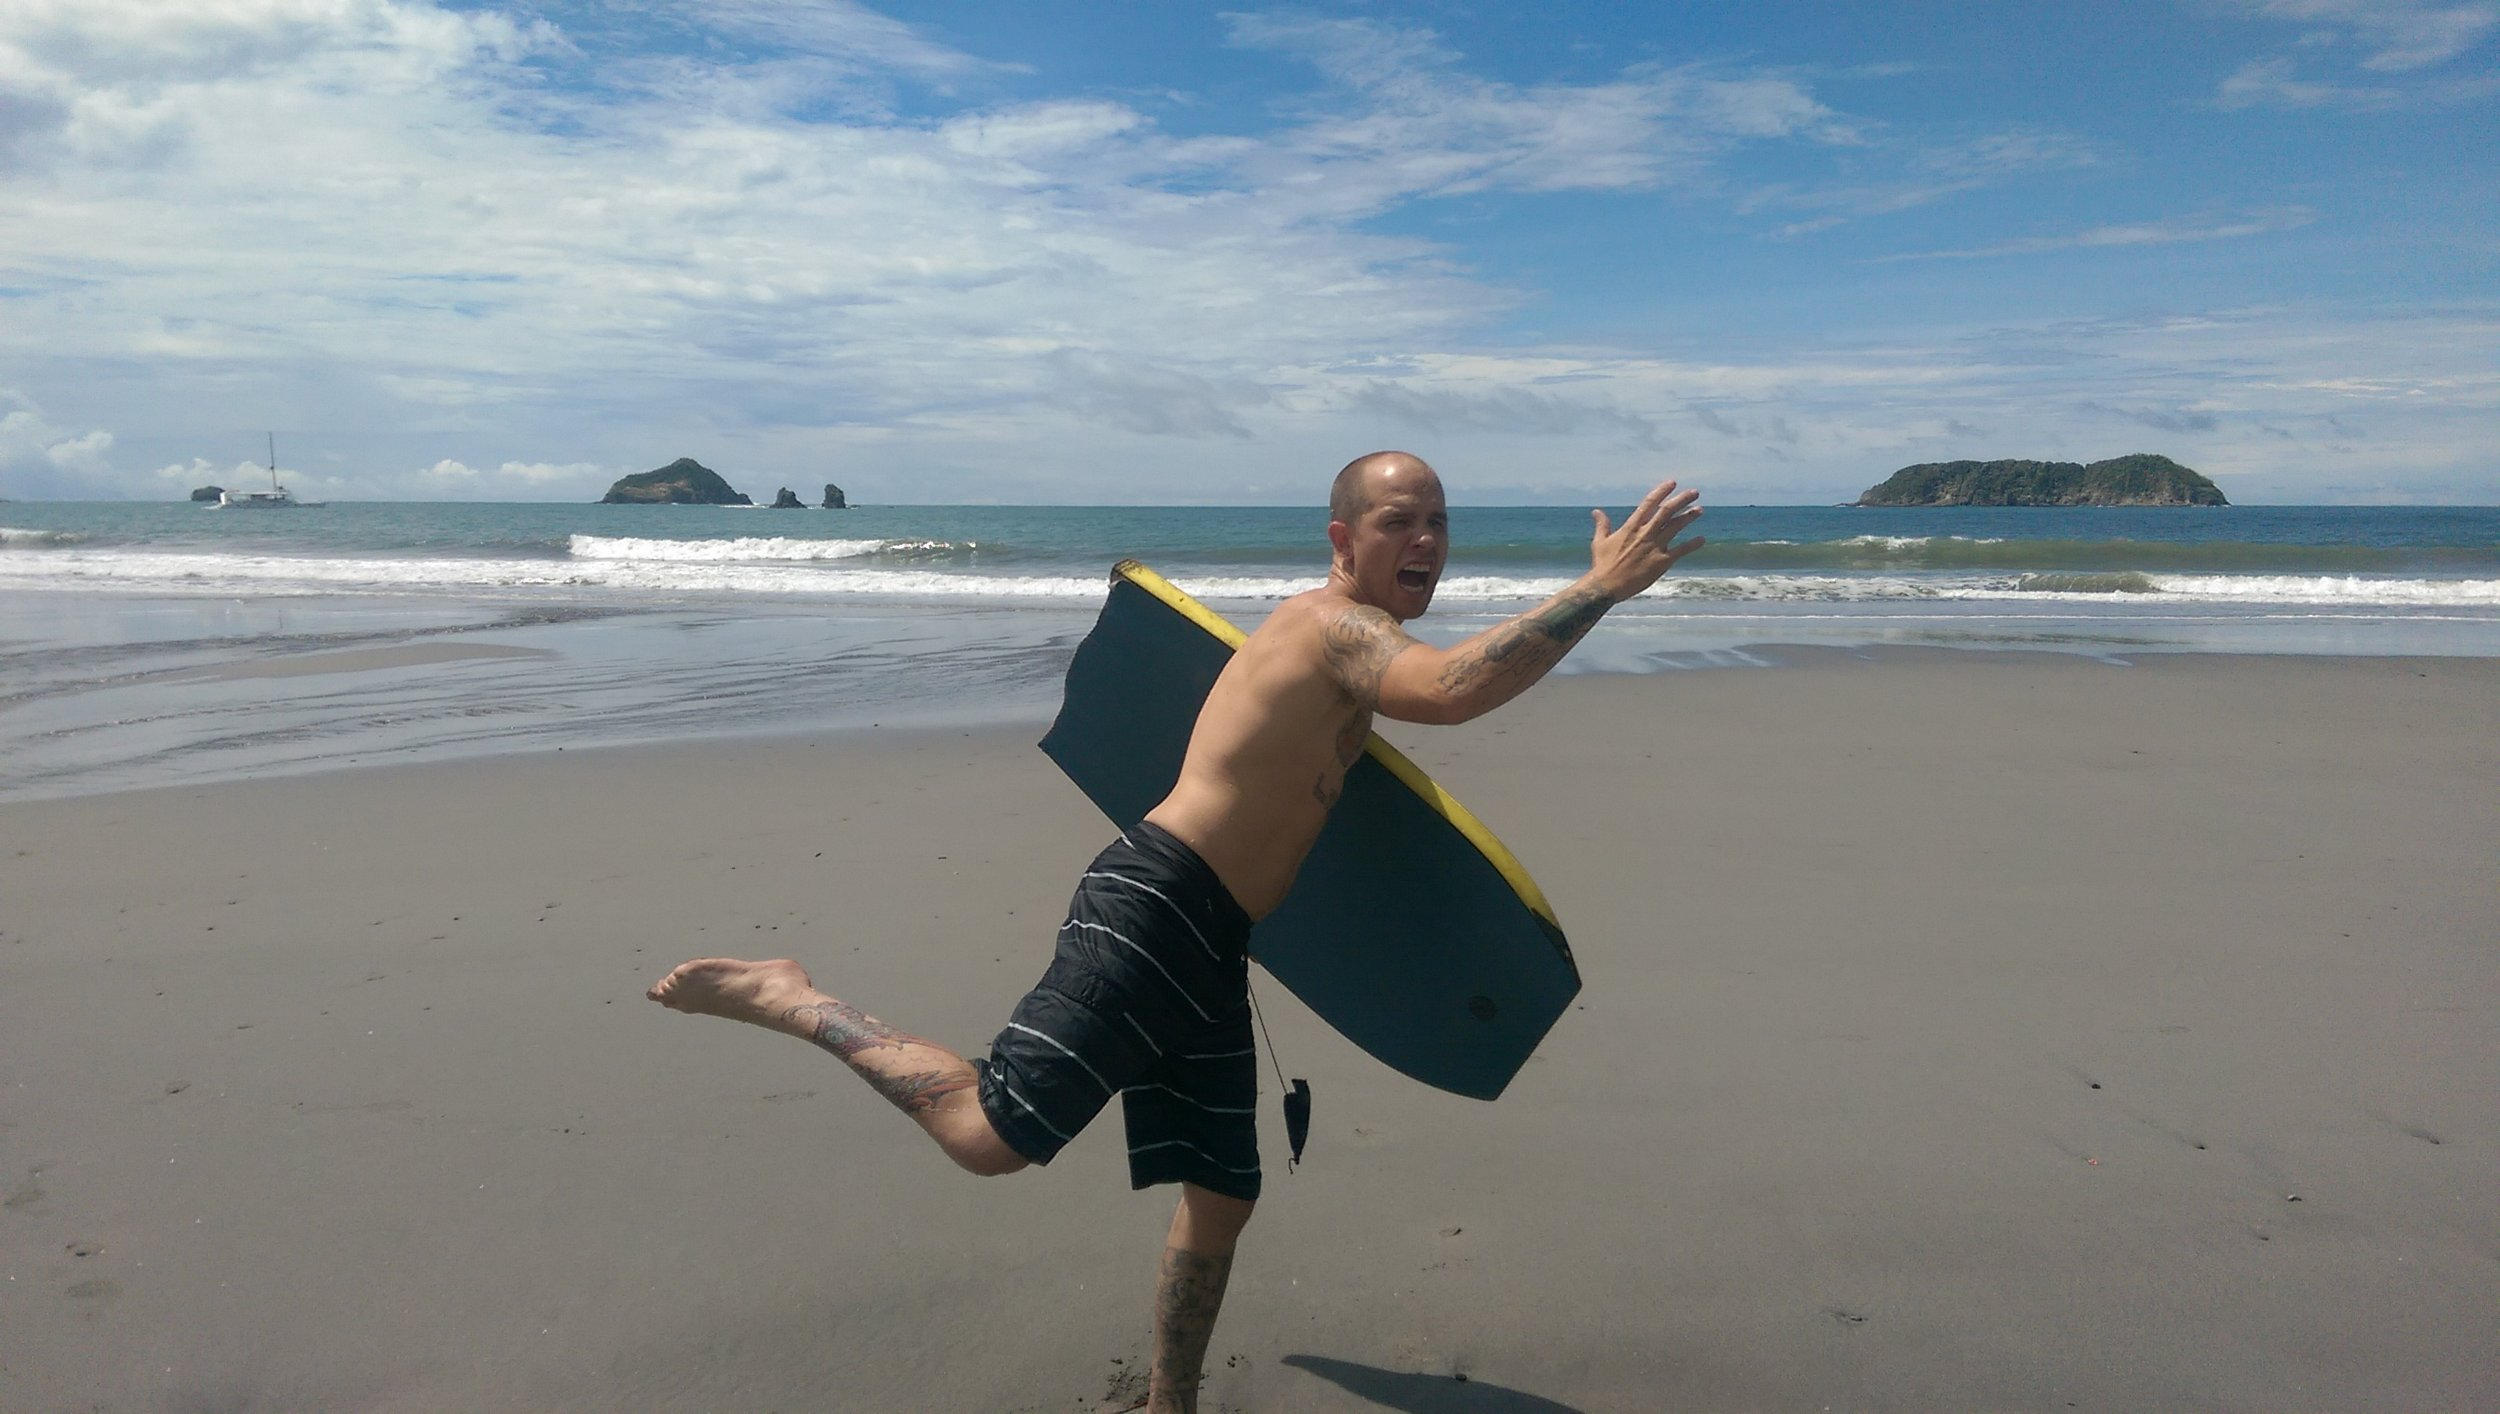 The beaches in Costa Rica... man, hard to beat!